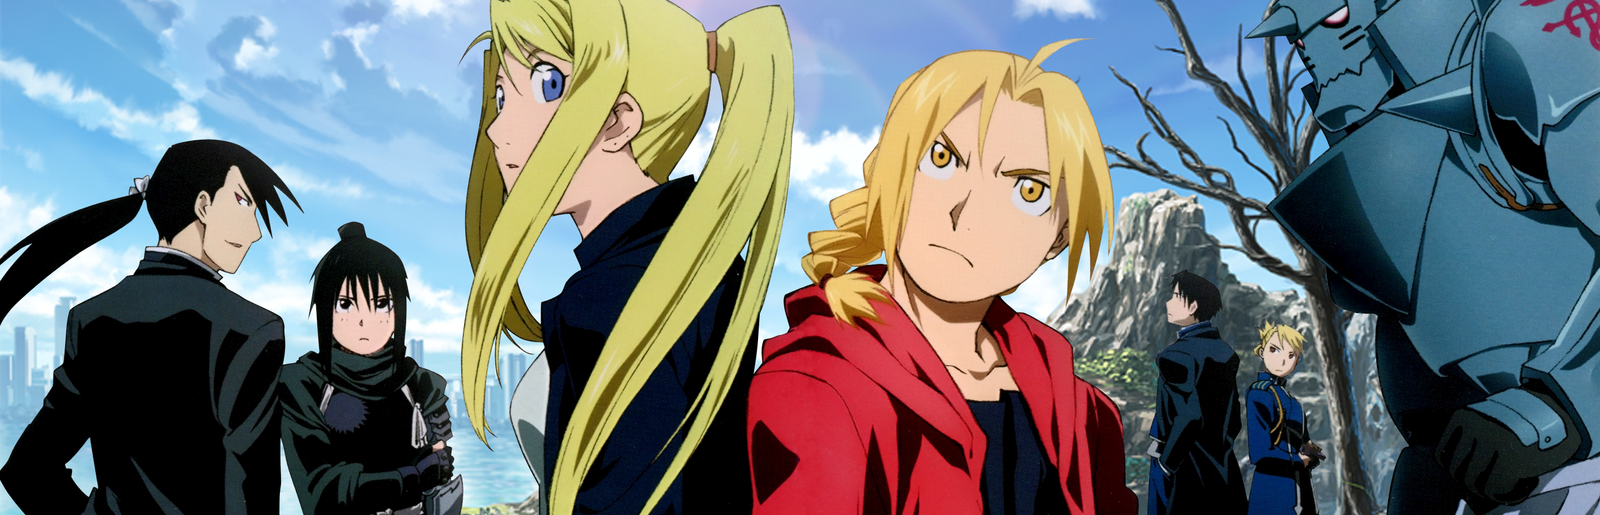 Fullmetal Alchemist: Brotherhood – Rewatch #13